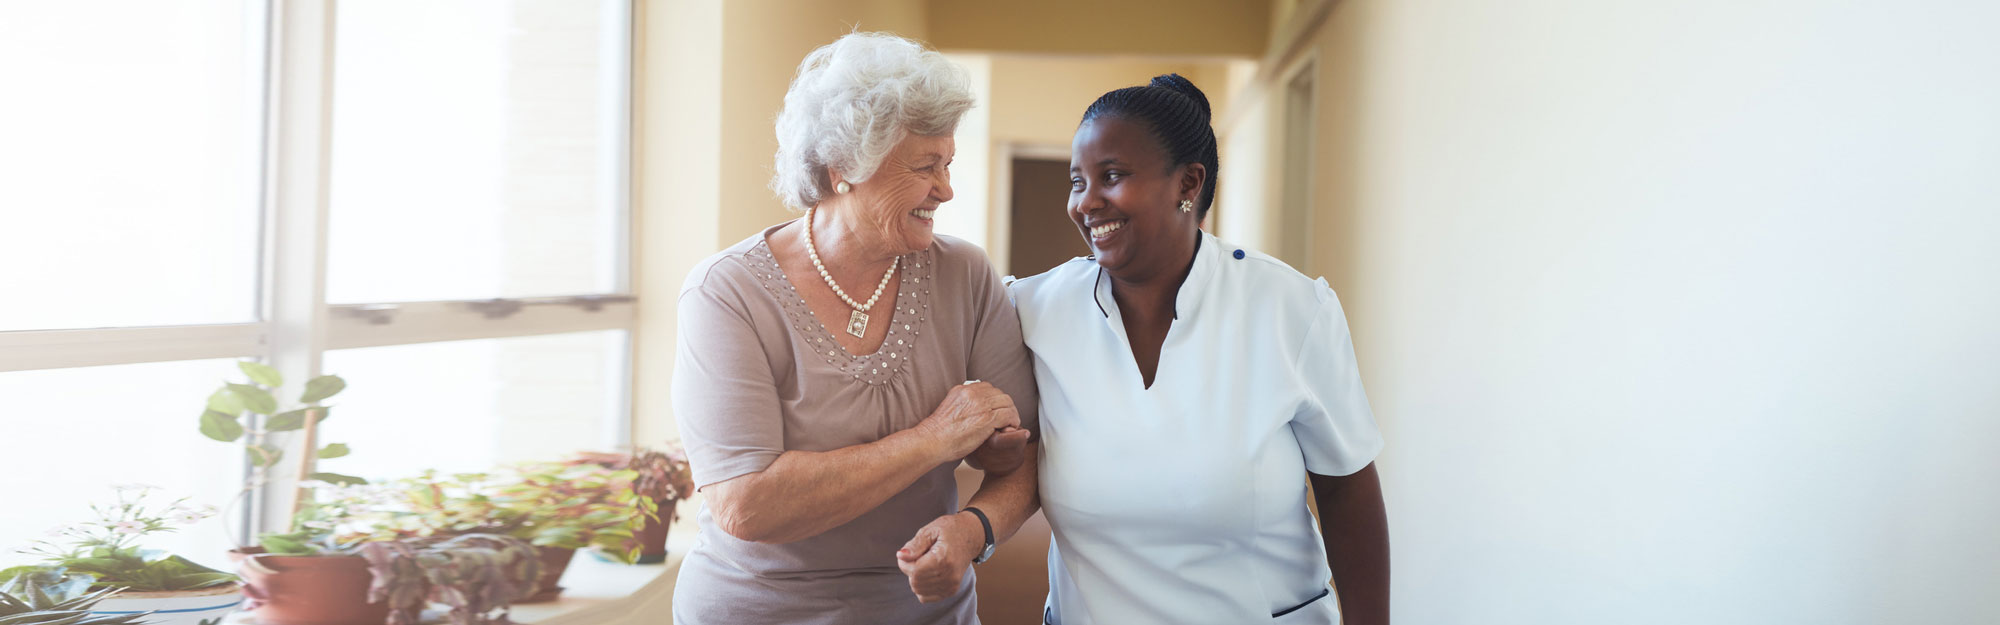 senior woman arm-in-arm with caregiver smiling while walking down a hallway